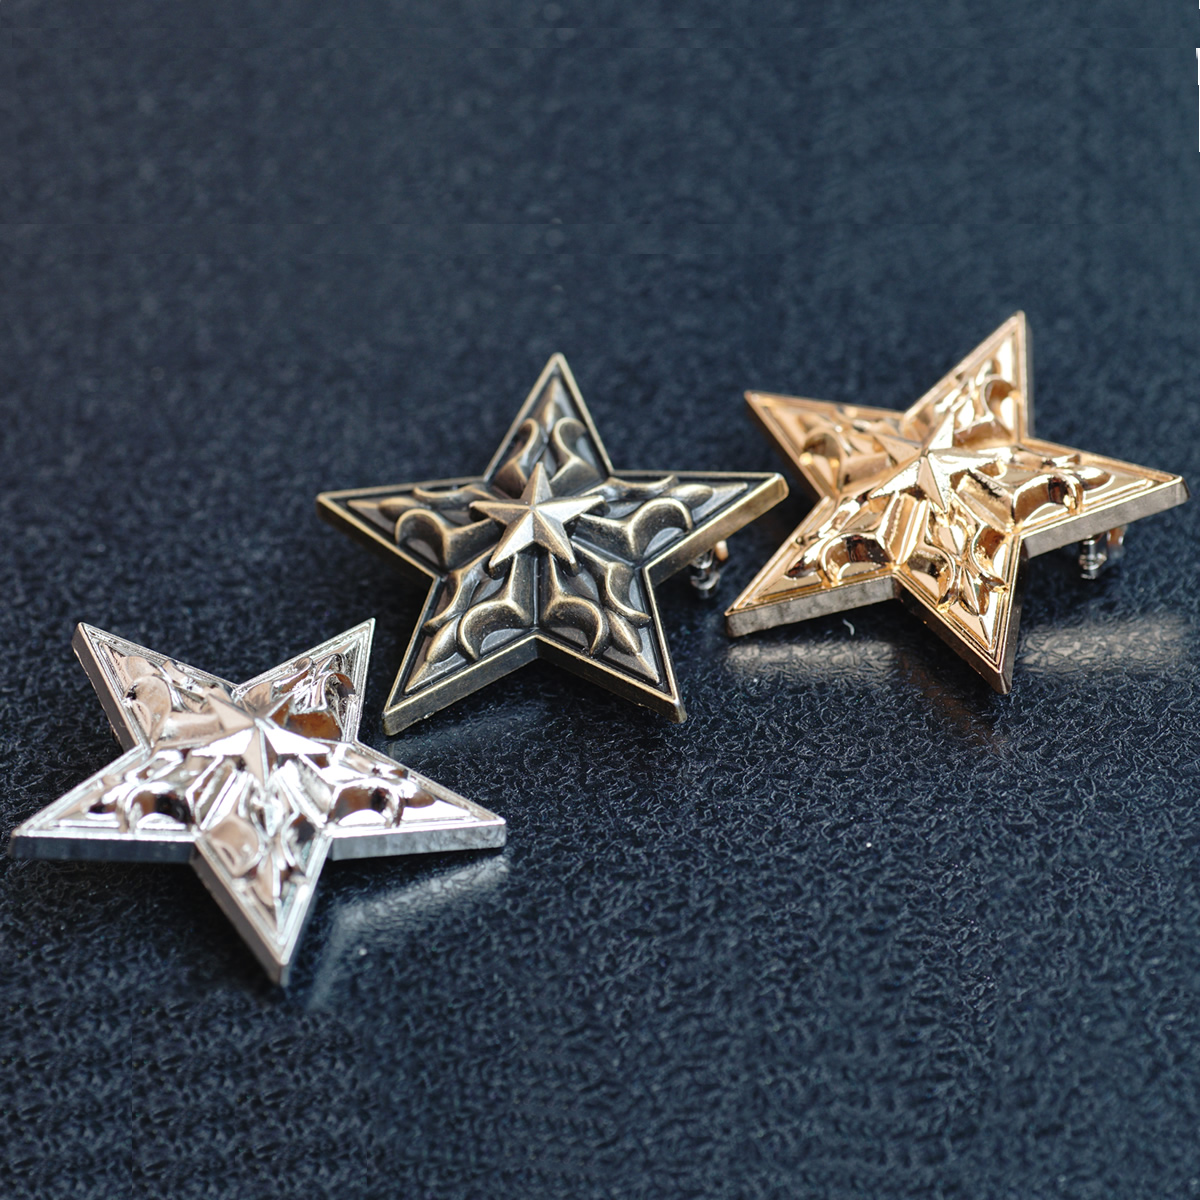 New Brooch European and American classic five pointed star badge gold silver copper three color metal BROOCH BADGE jewelry